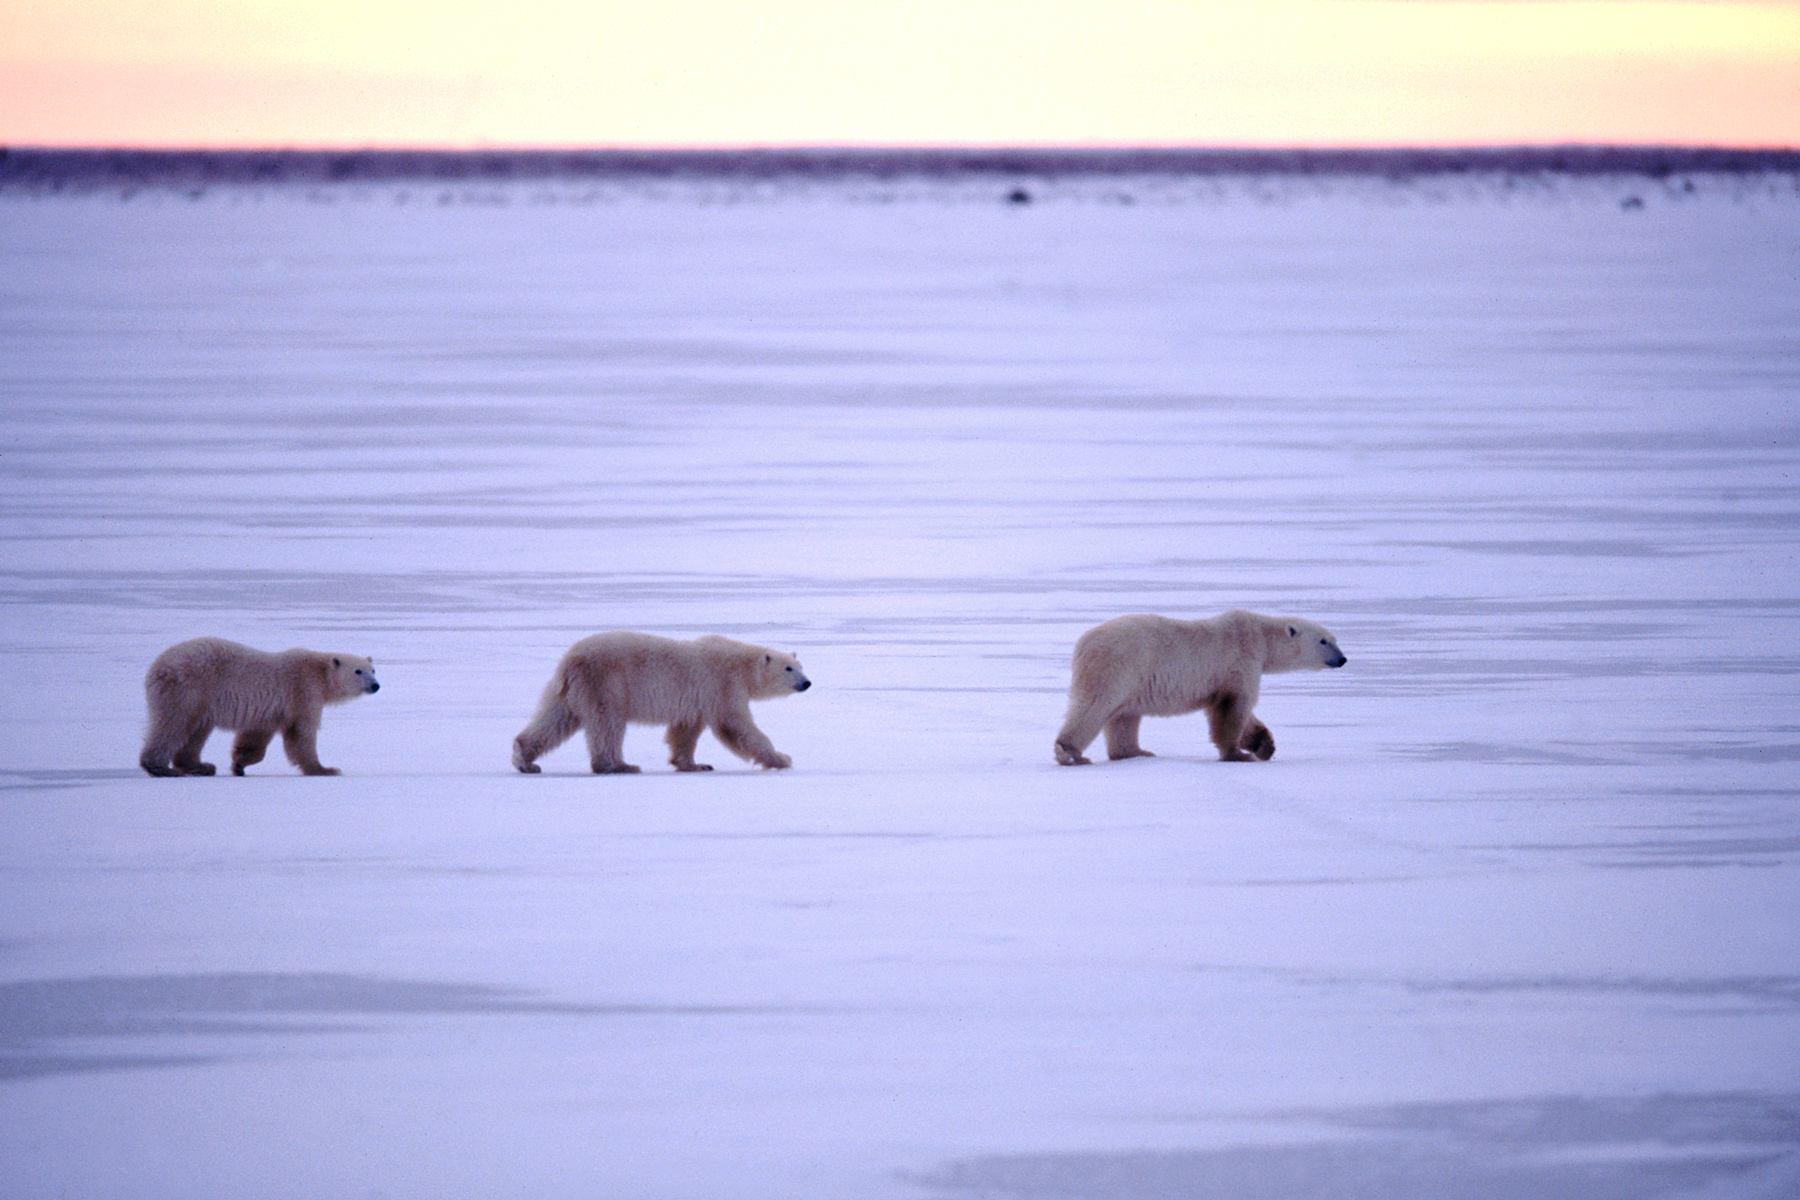 Migrating Polar Bears, Manitoba, Canada